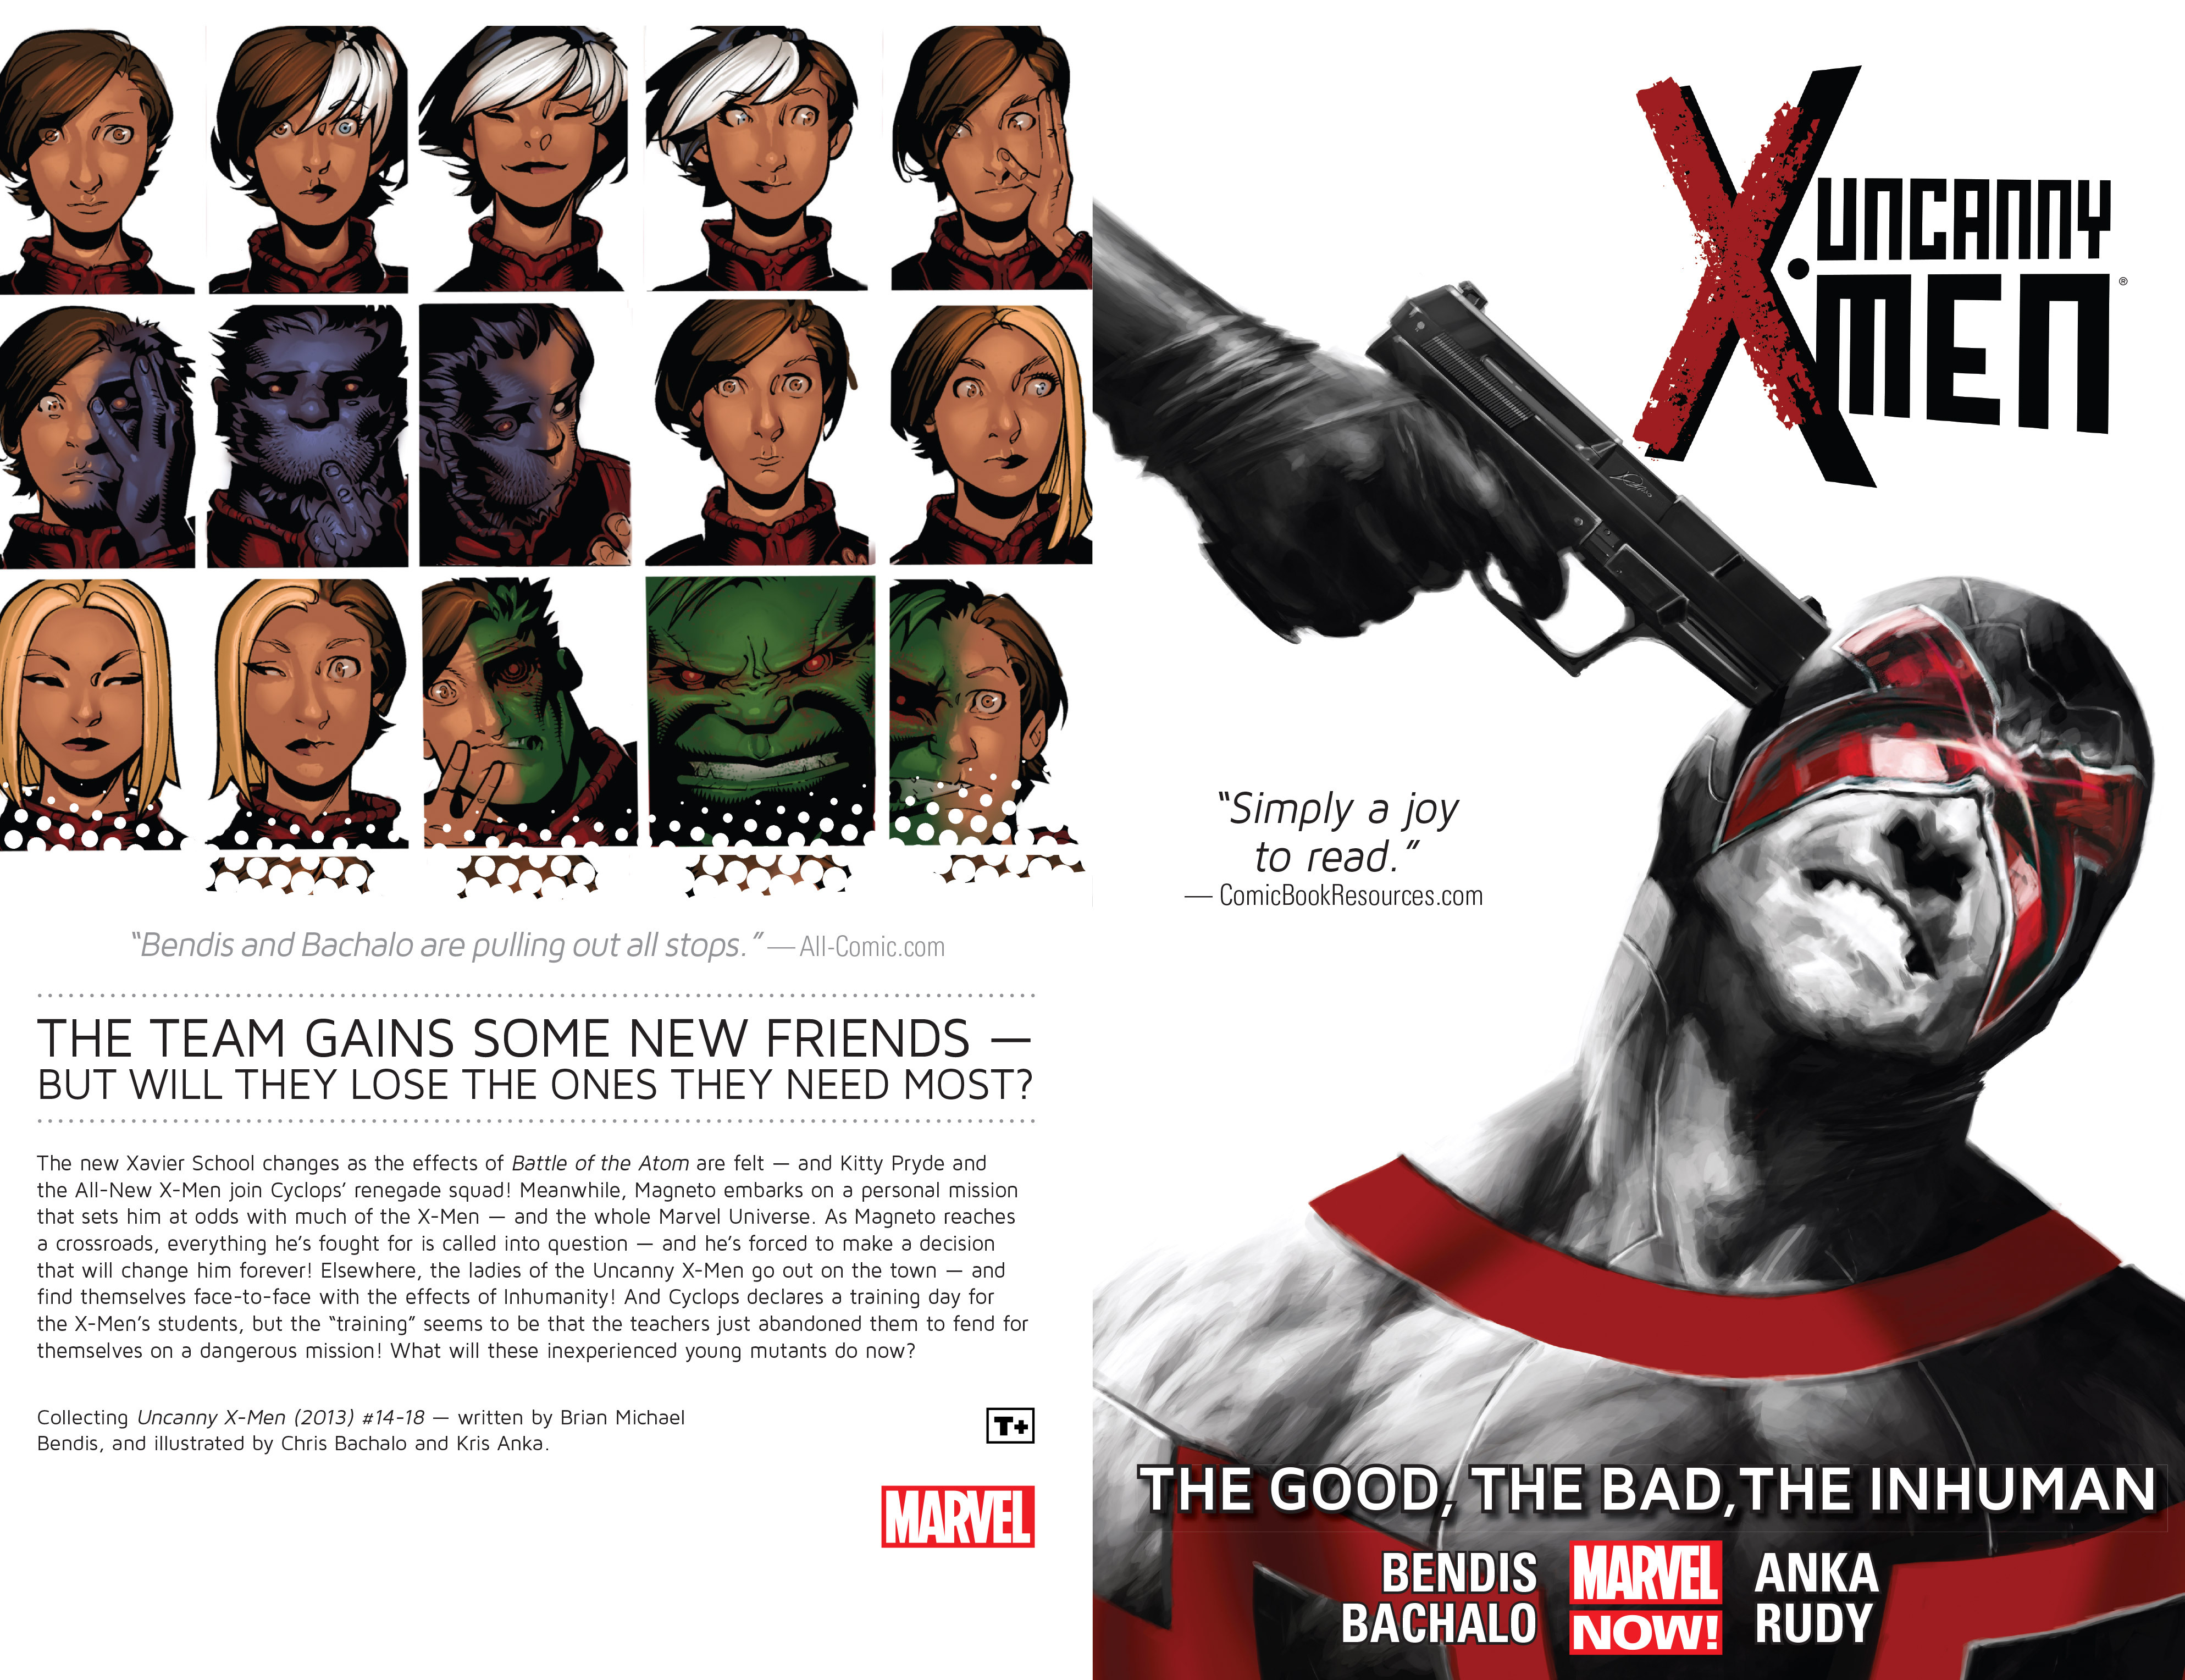 Read online Uncanny X-Men (2013) comic -  Issue # _TPB 3 - The Good, The Bad, The Inhuman - 2